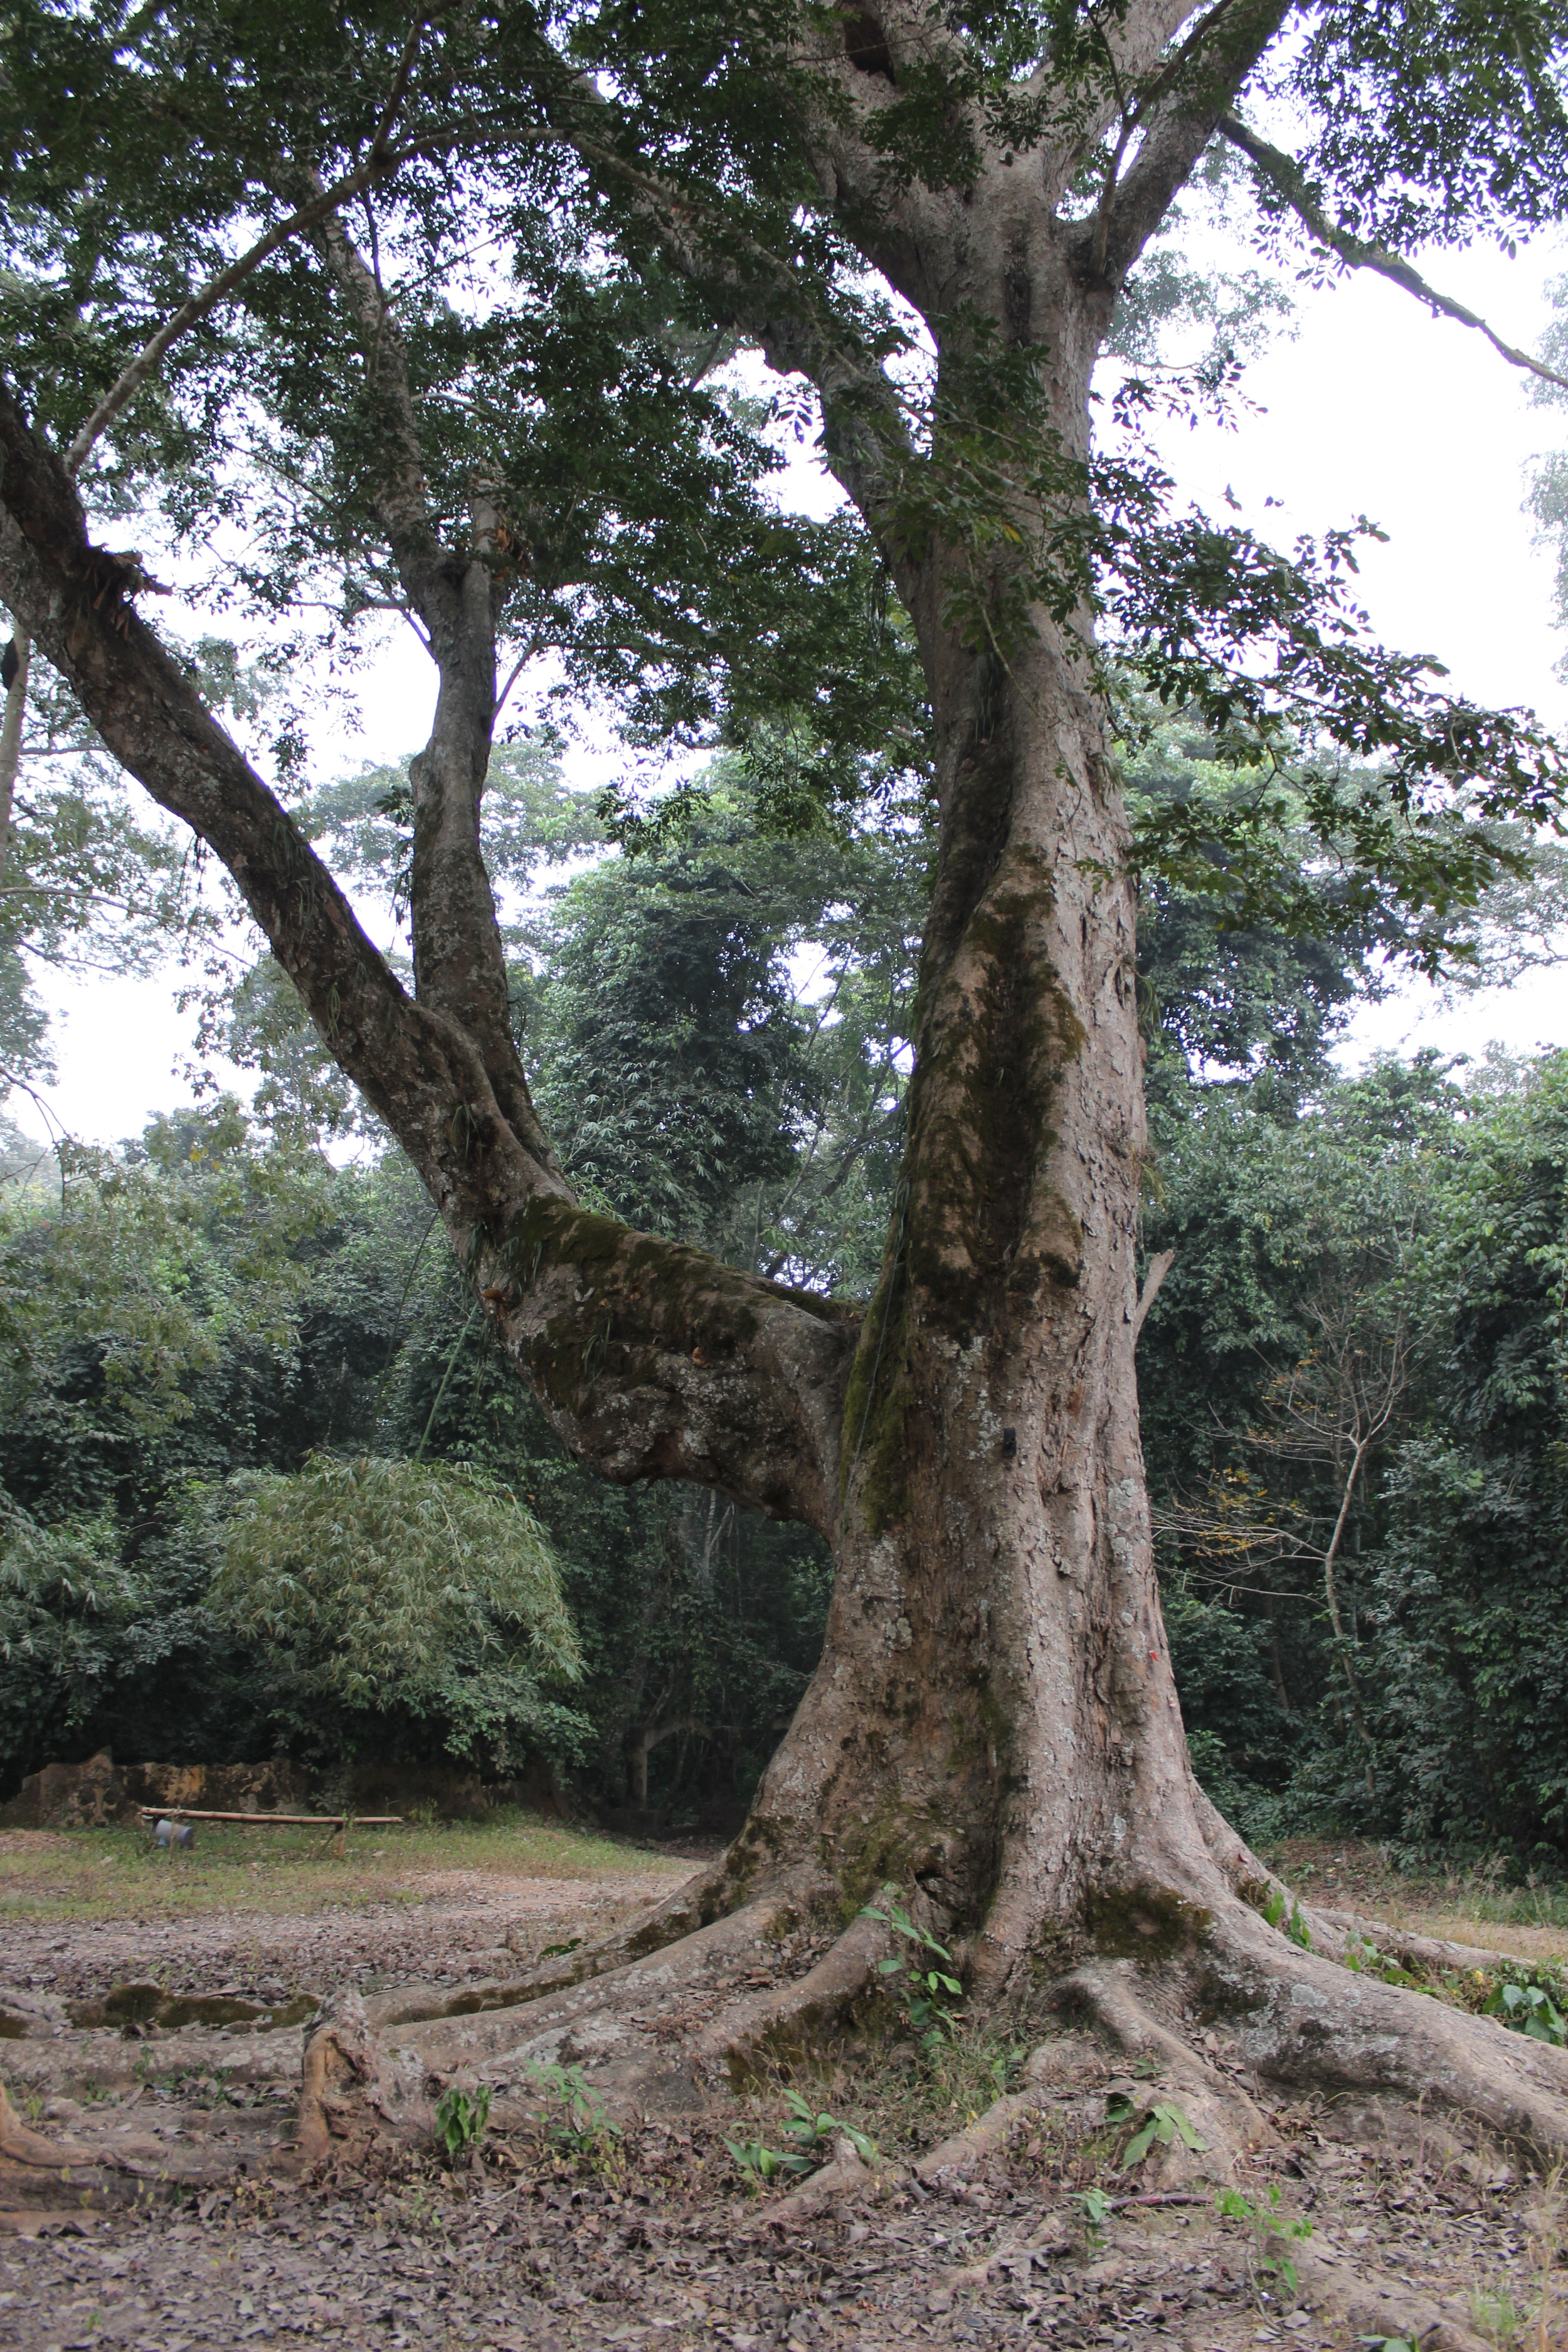 One of the rare olden trees, directly at the entrance to the Ojubo Oshun.